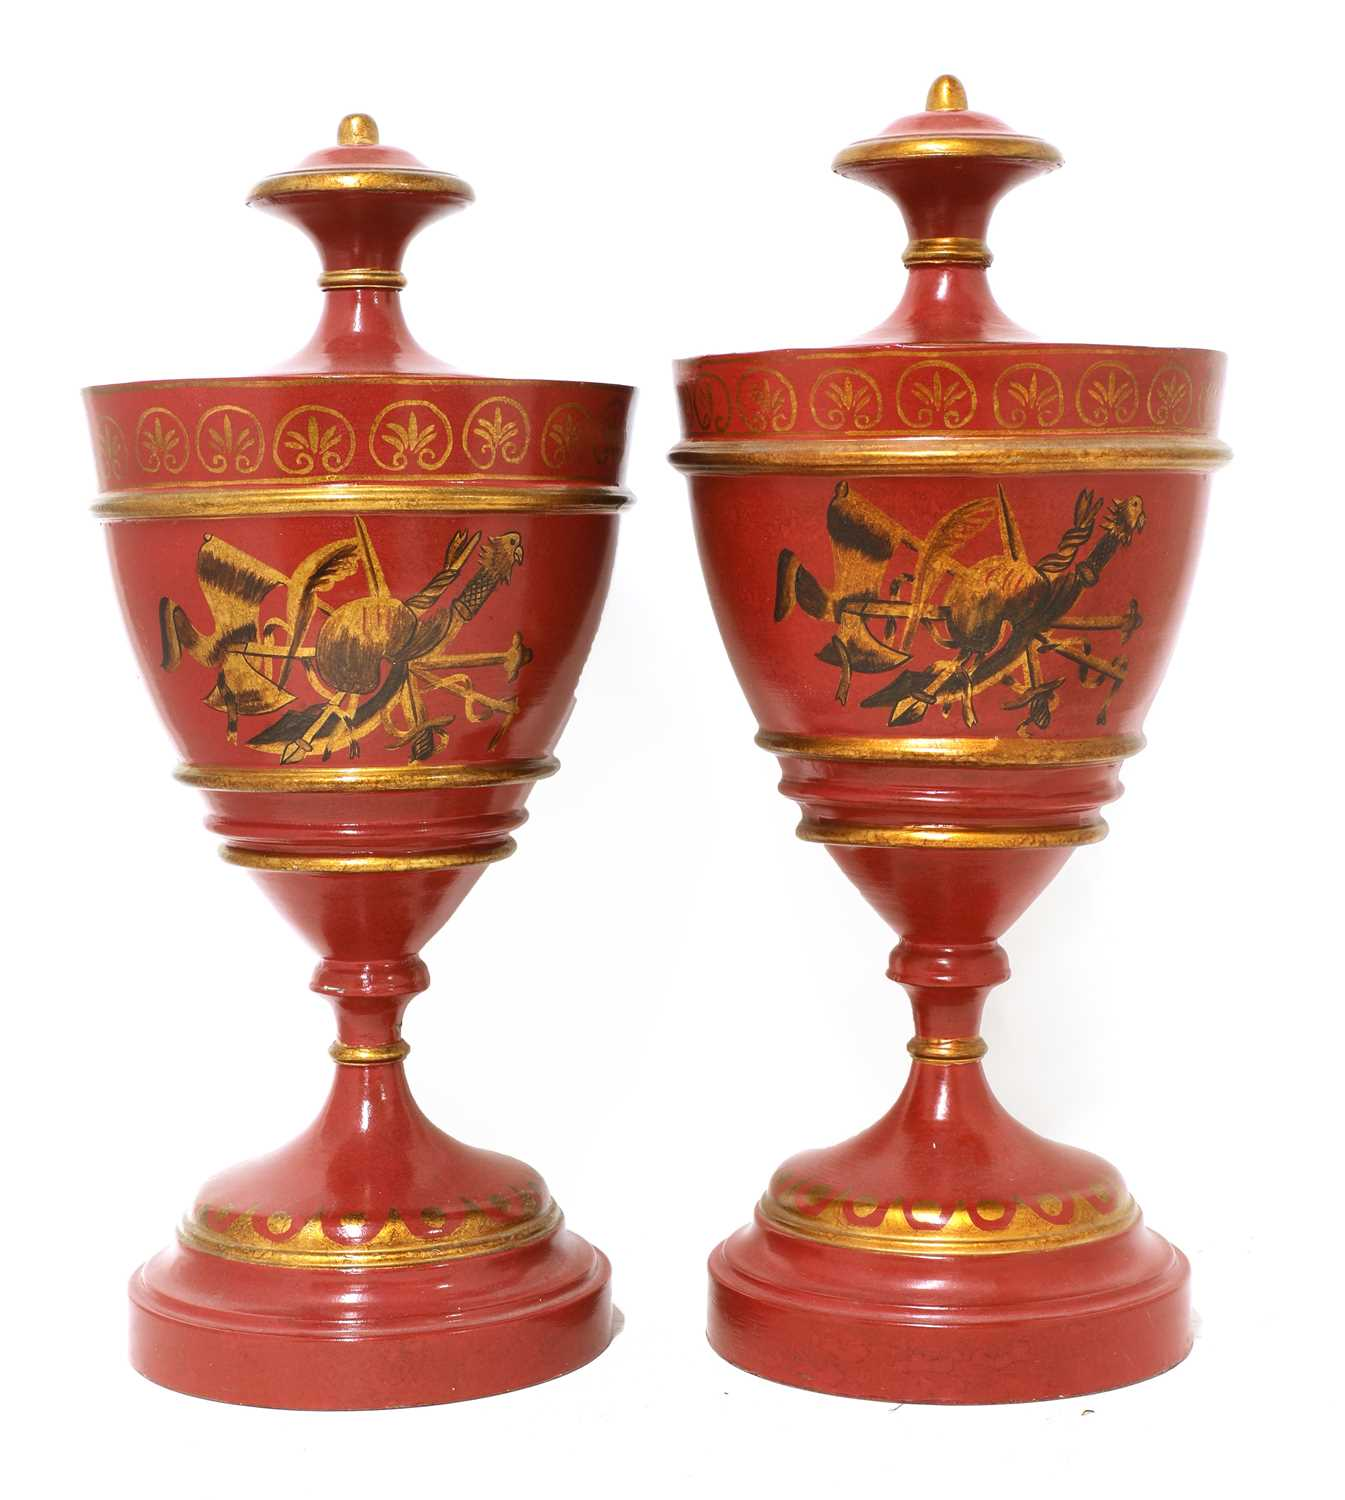 A pair of Regency-style toleware urns - Image 2 of 5